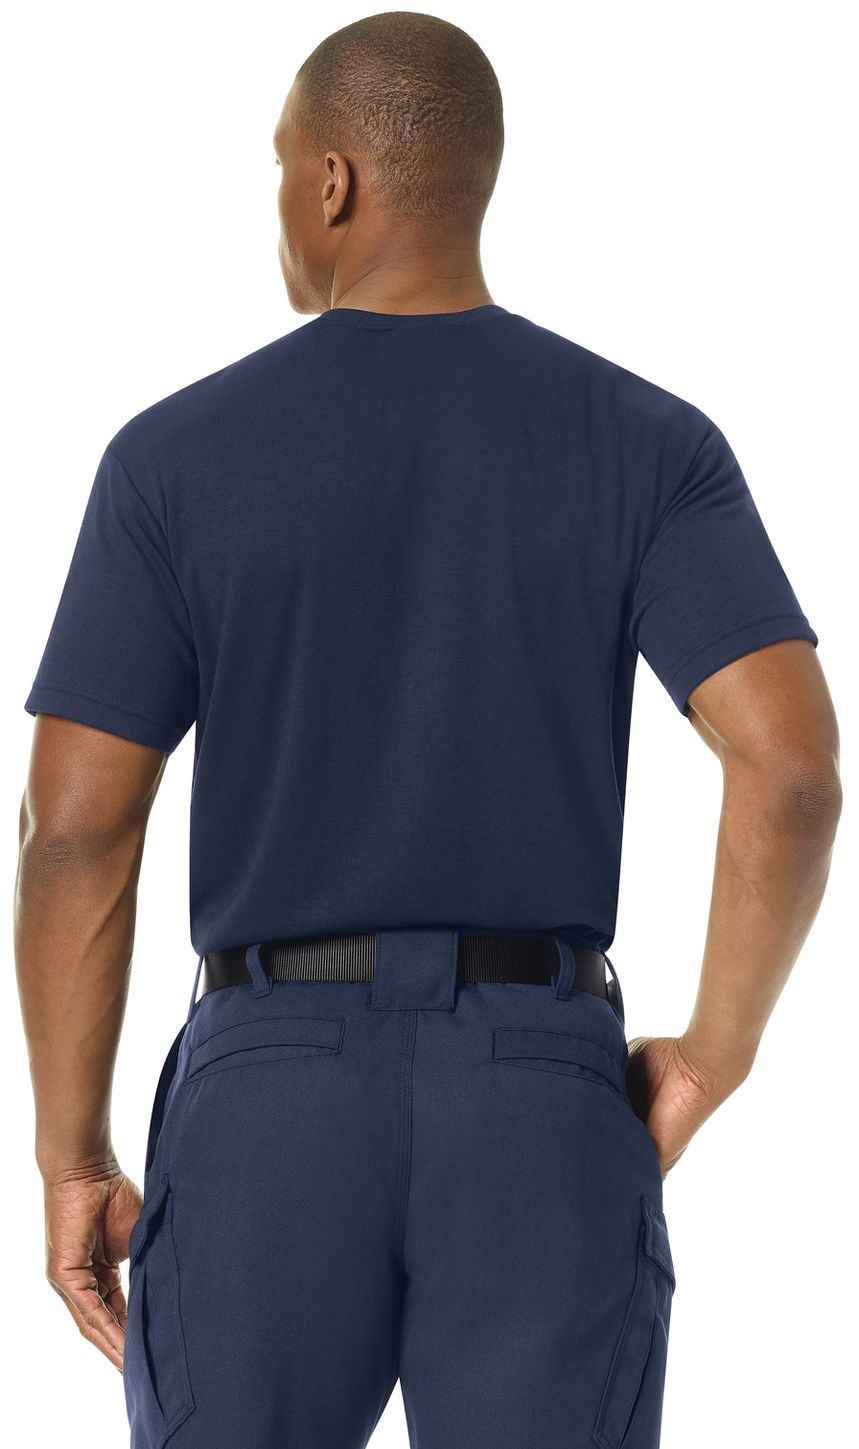 workrite-fr-ft34-station-wear-base-layer-tee-navy-example-back.jpg